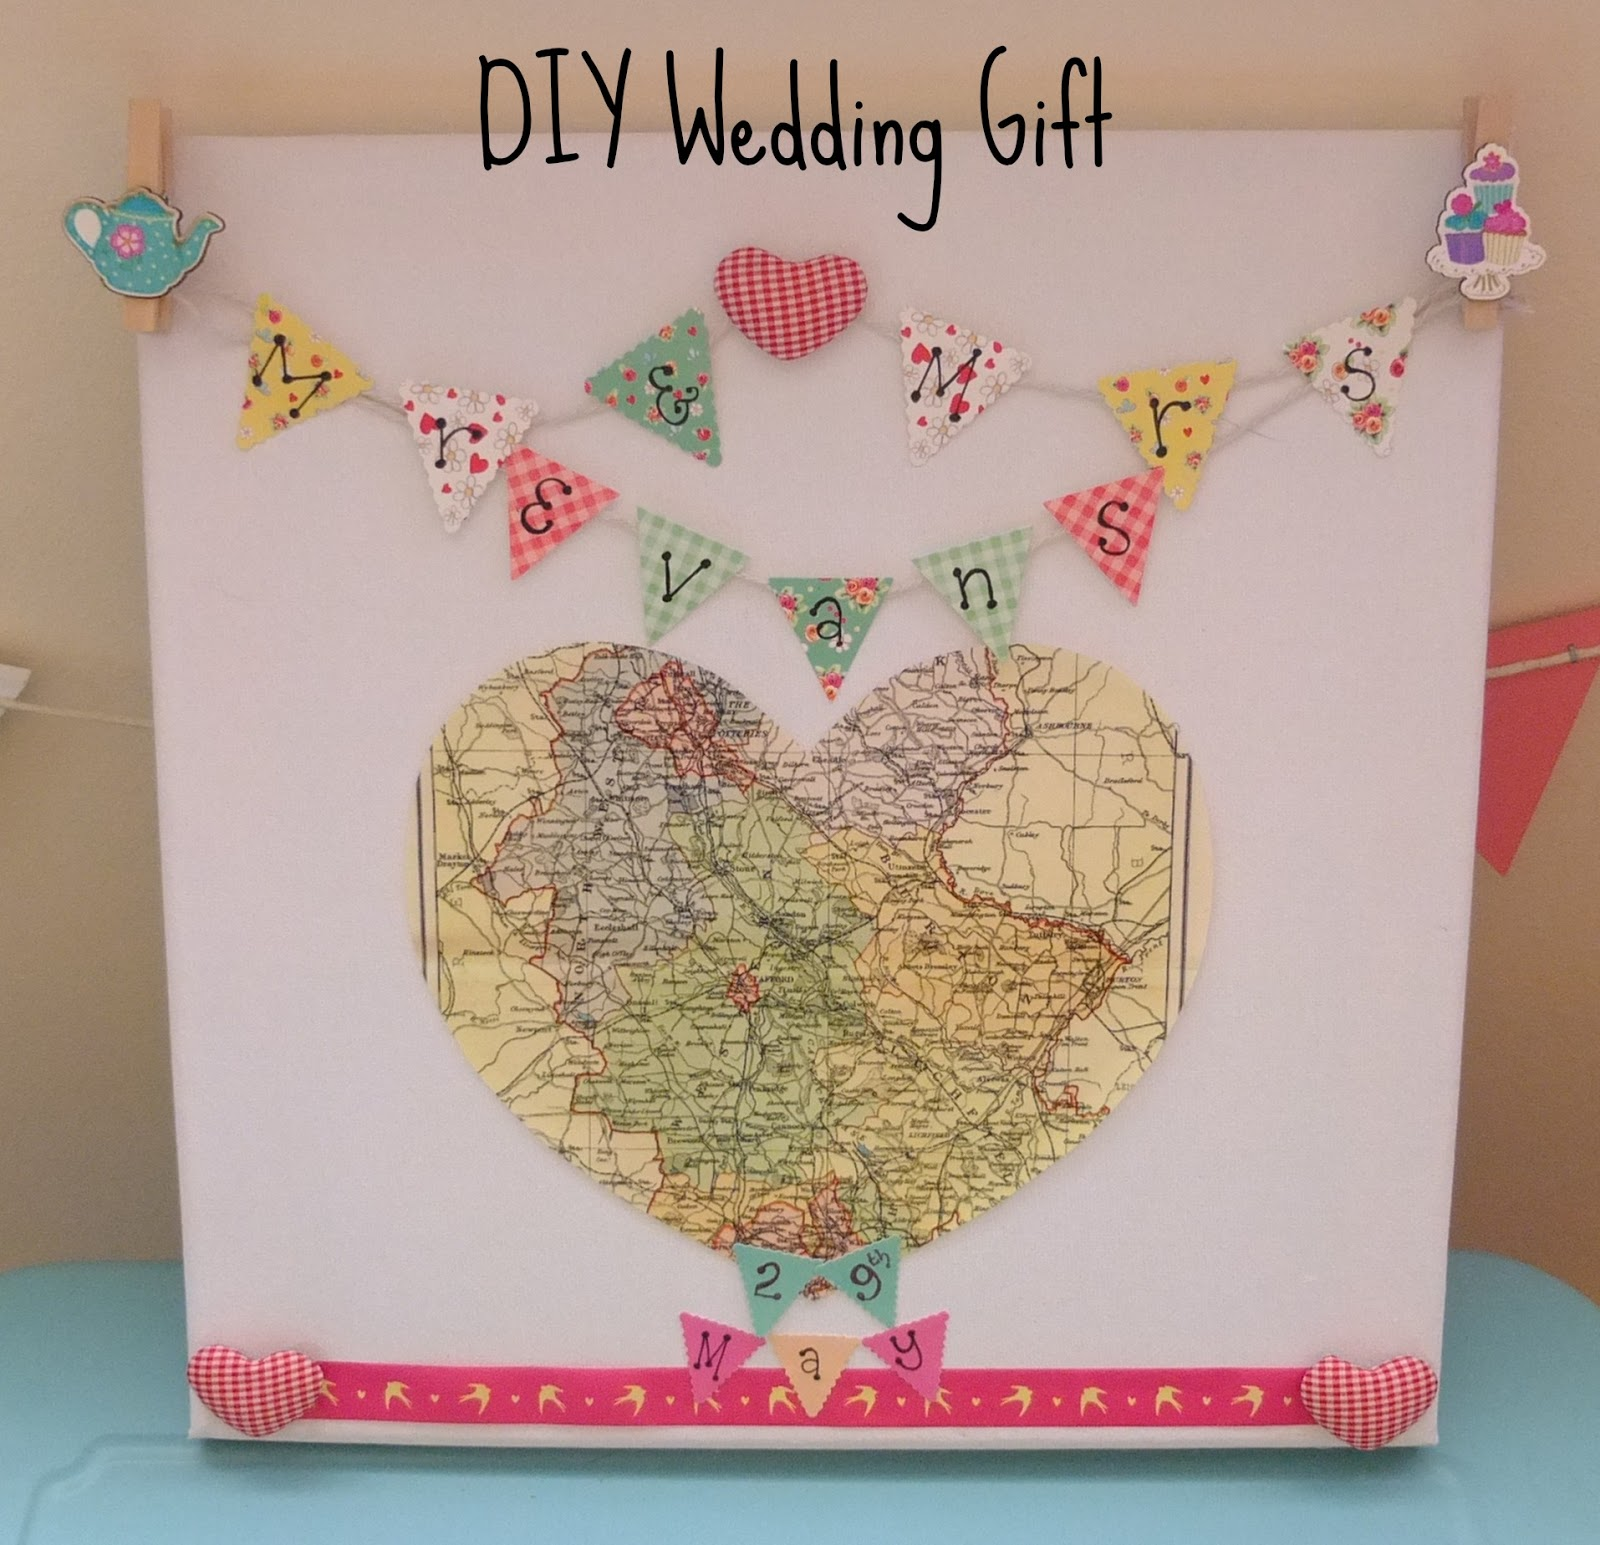 Wedding Gift Ideas On A Budget: DIY Wedding Gift On A Budget